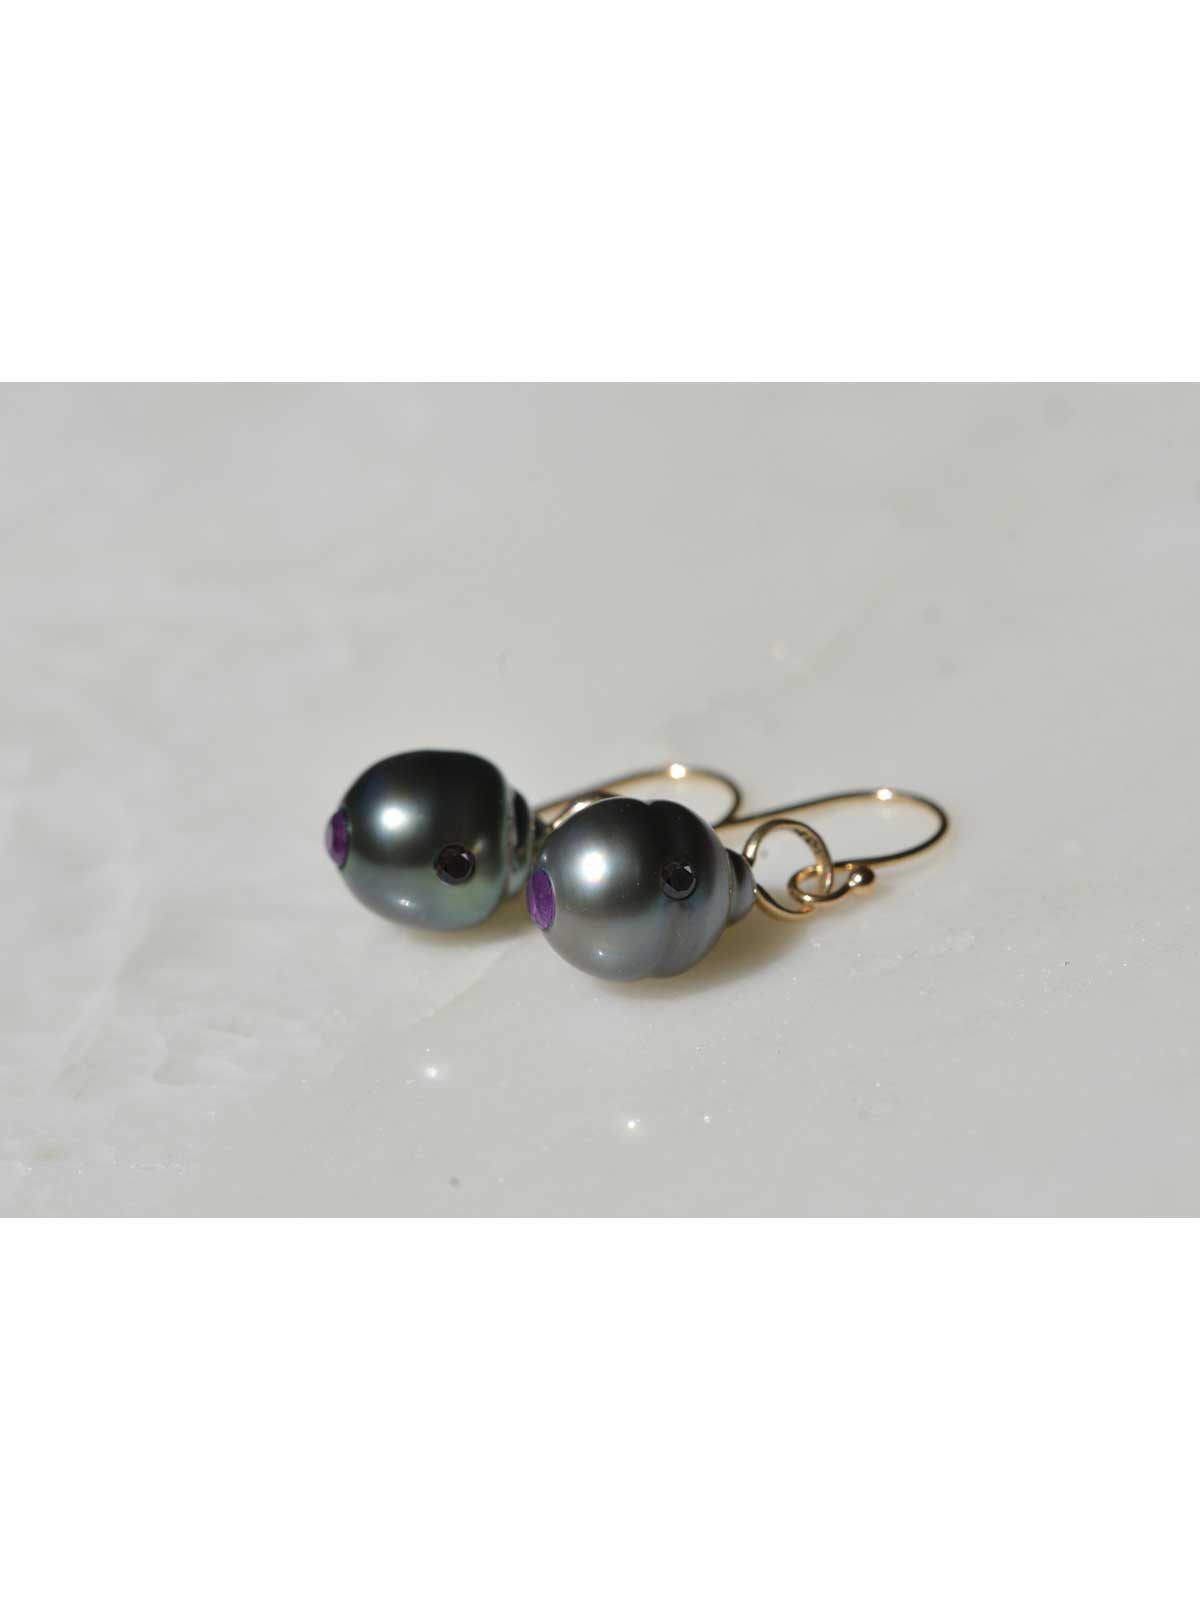 panthere earrings Tahitian Pearl Amethyst diamond 14K yellow gold